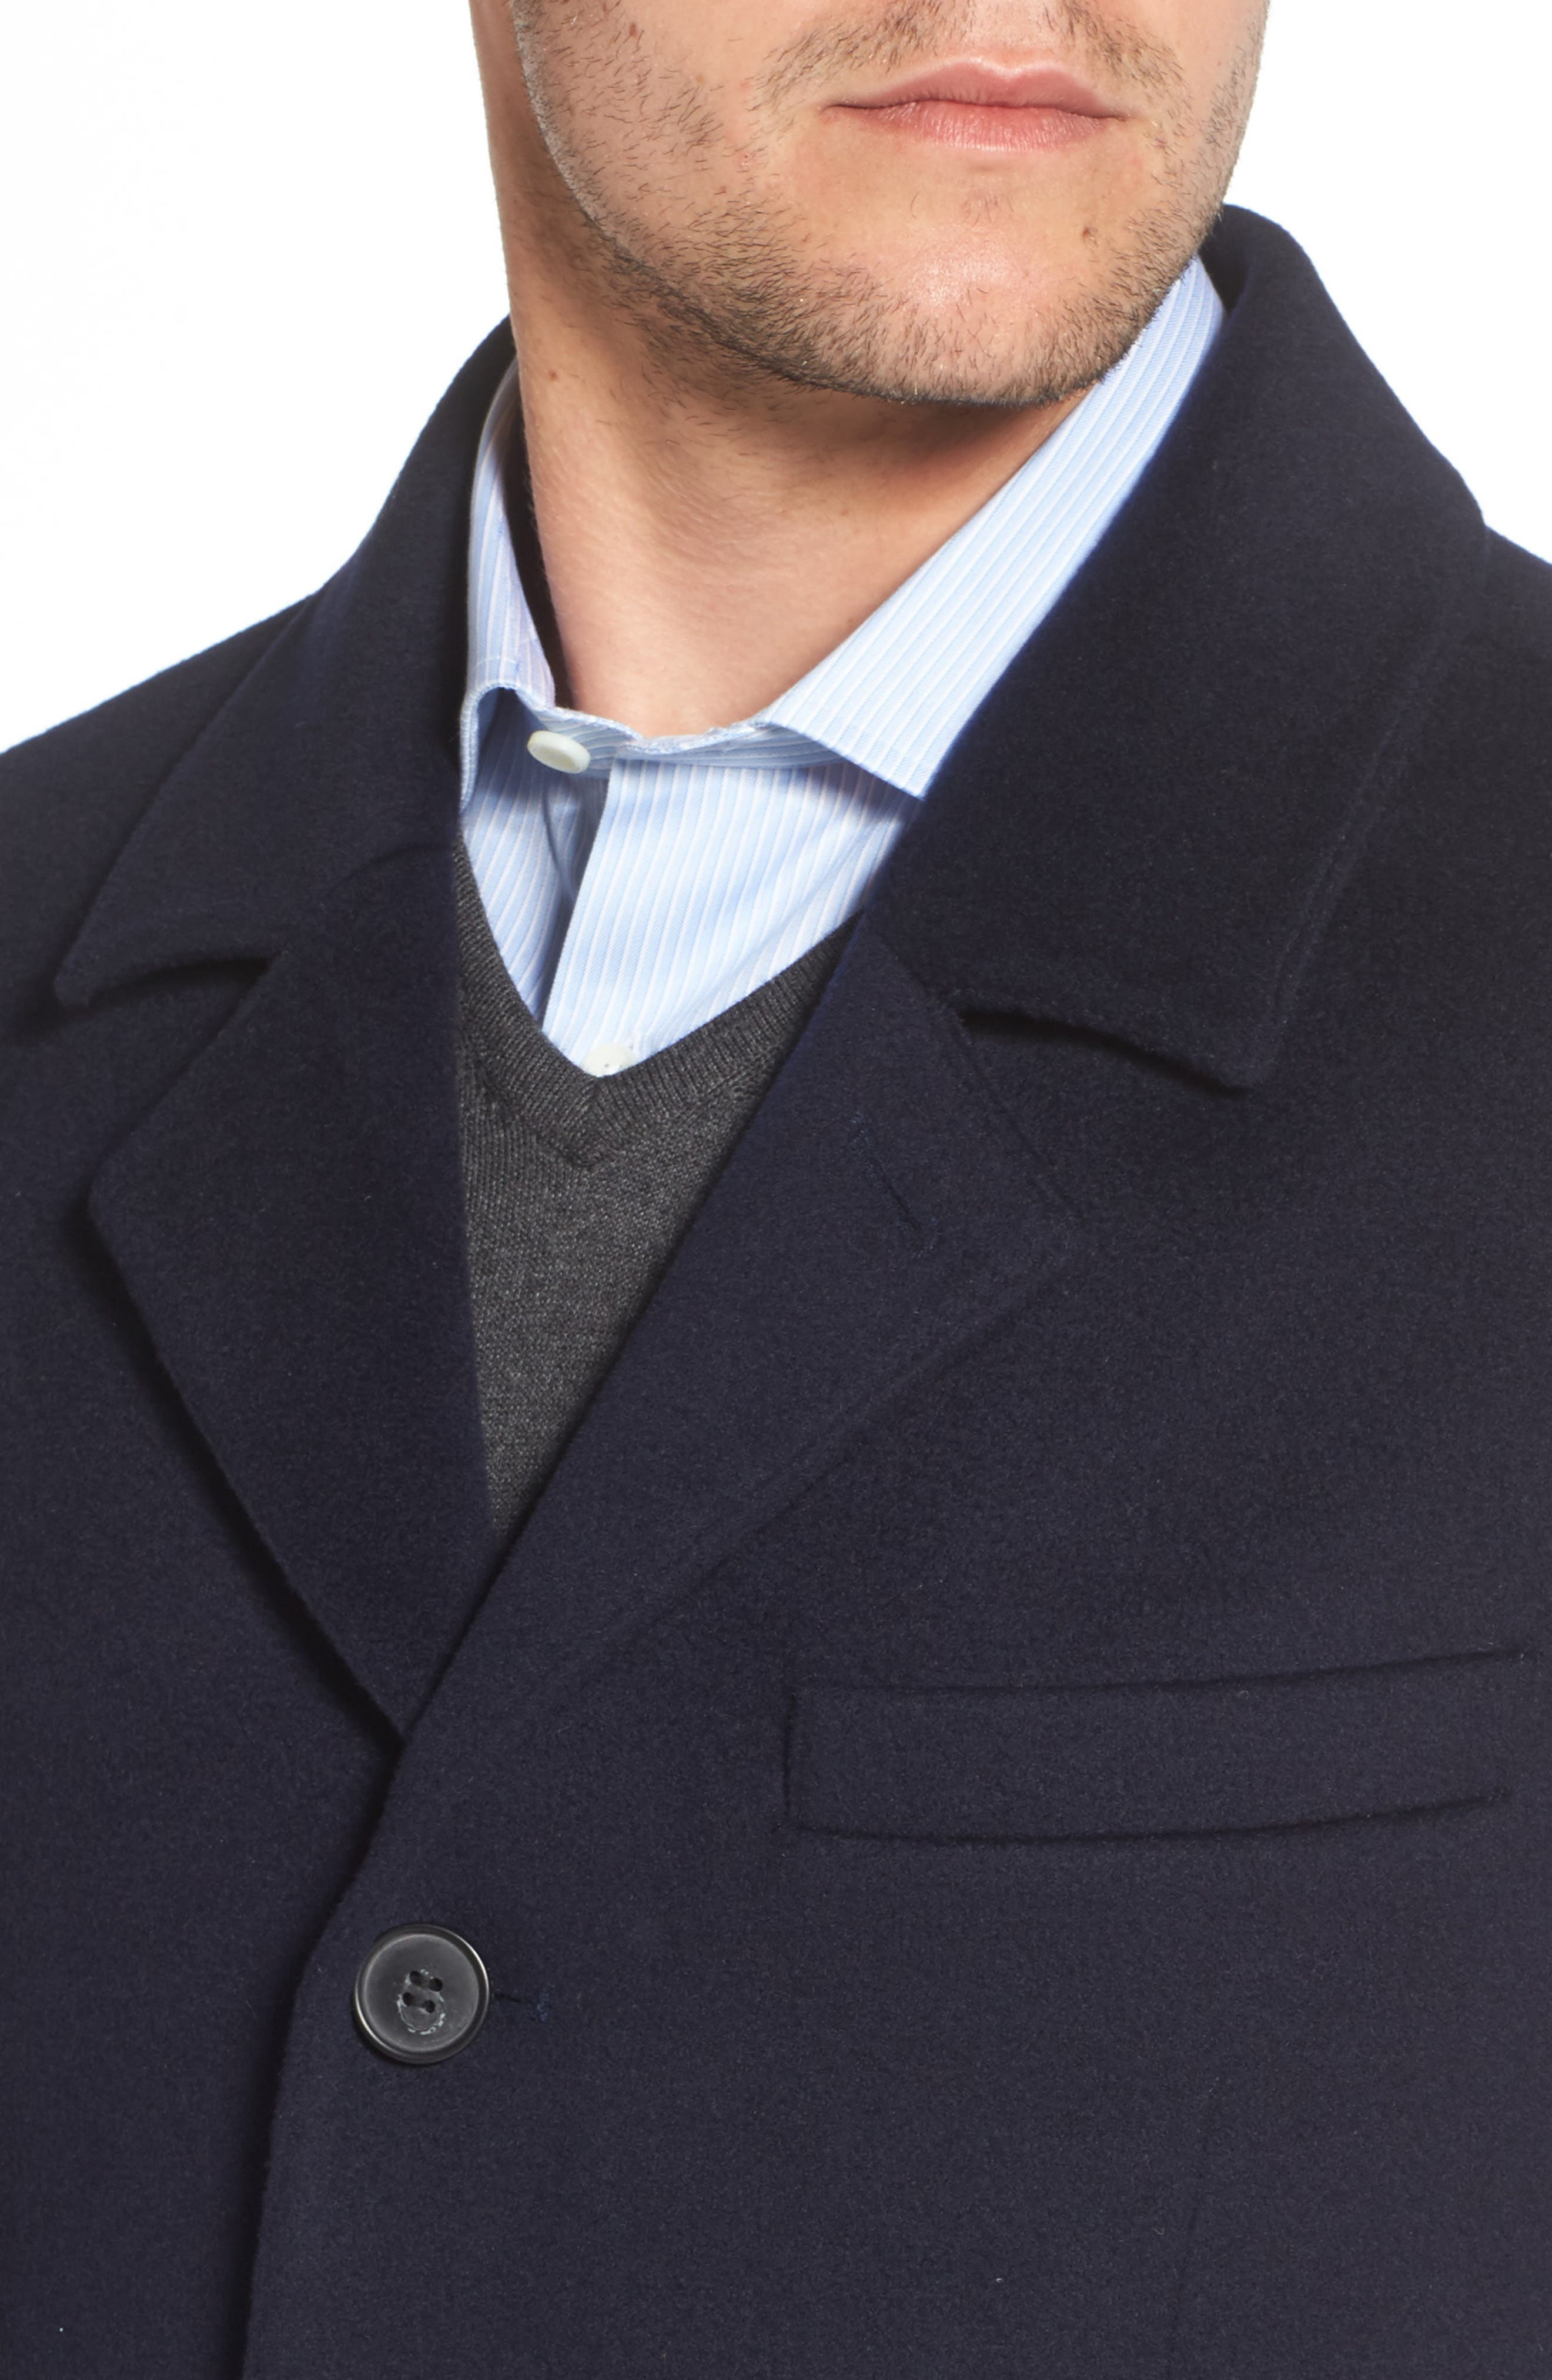 Lambswool Topcoat,                             Alternate thumbnail 4, color,                             Navy